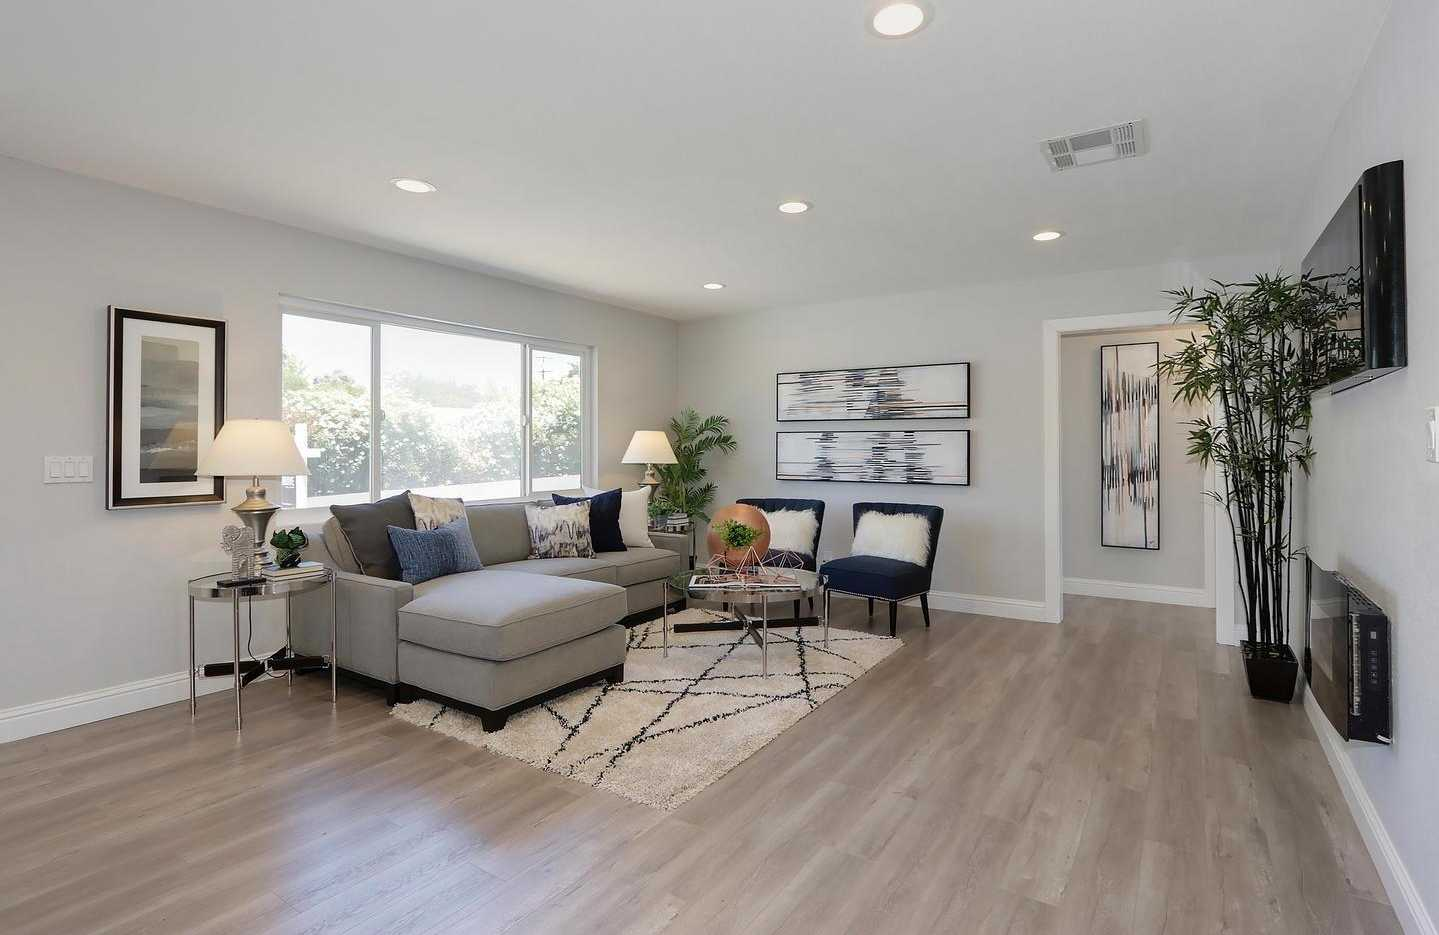 $450,000 - 3Br/2Ba -  for Sale in Folsom